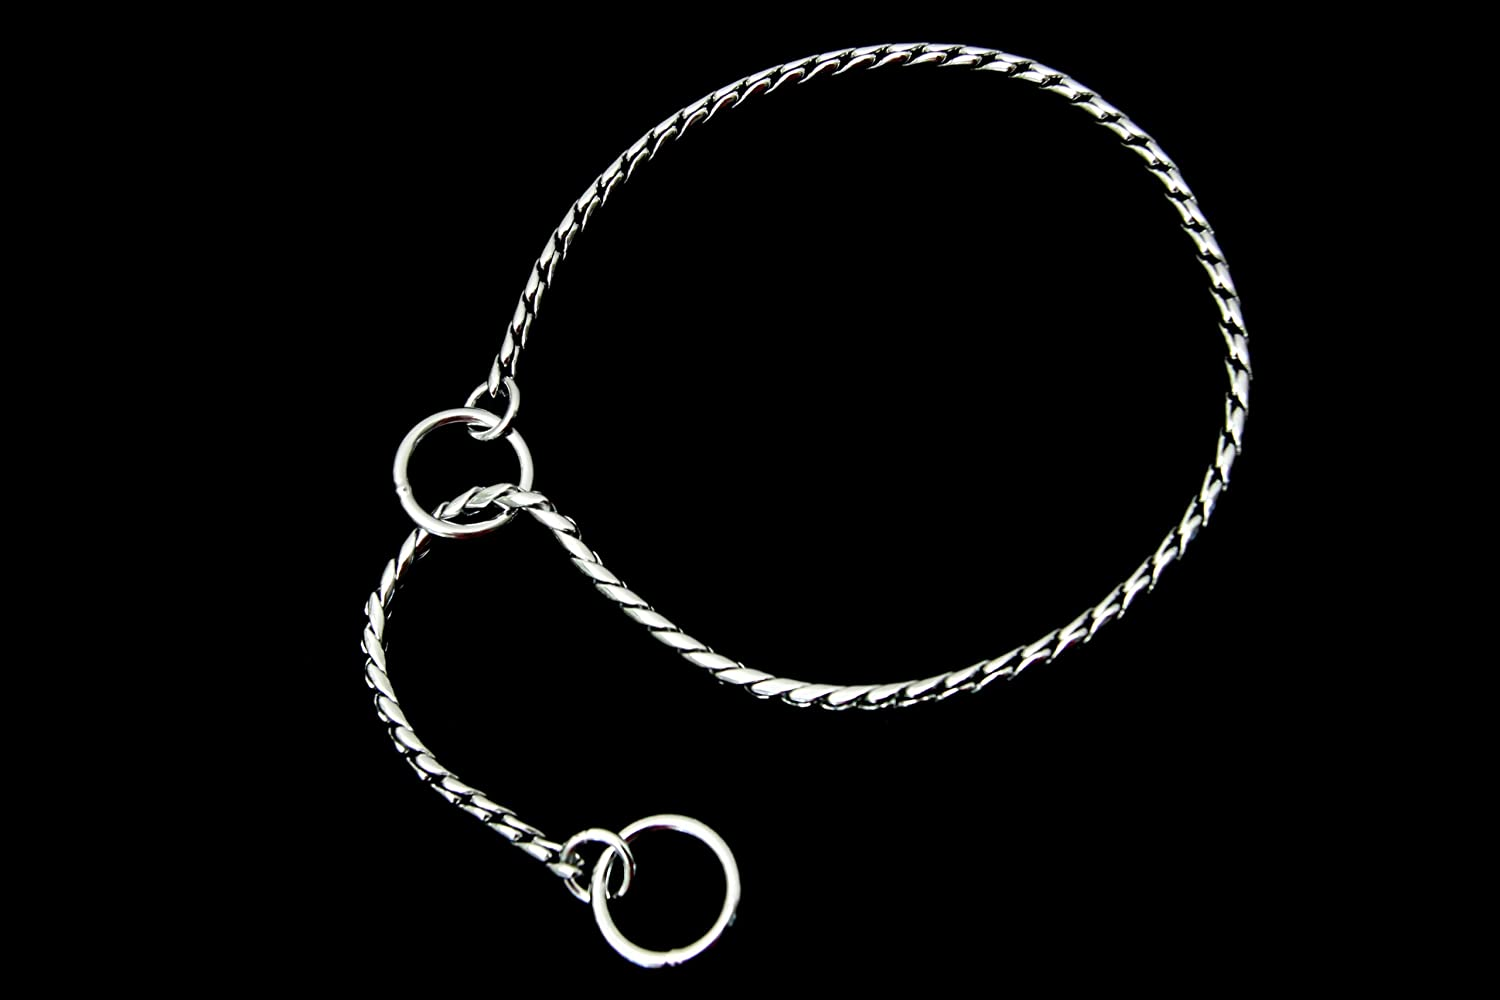 Chrome Plate Alvalley Snake Show Chain for Dogs Thickness 5,5mm x 18 in